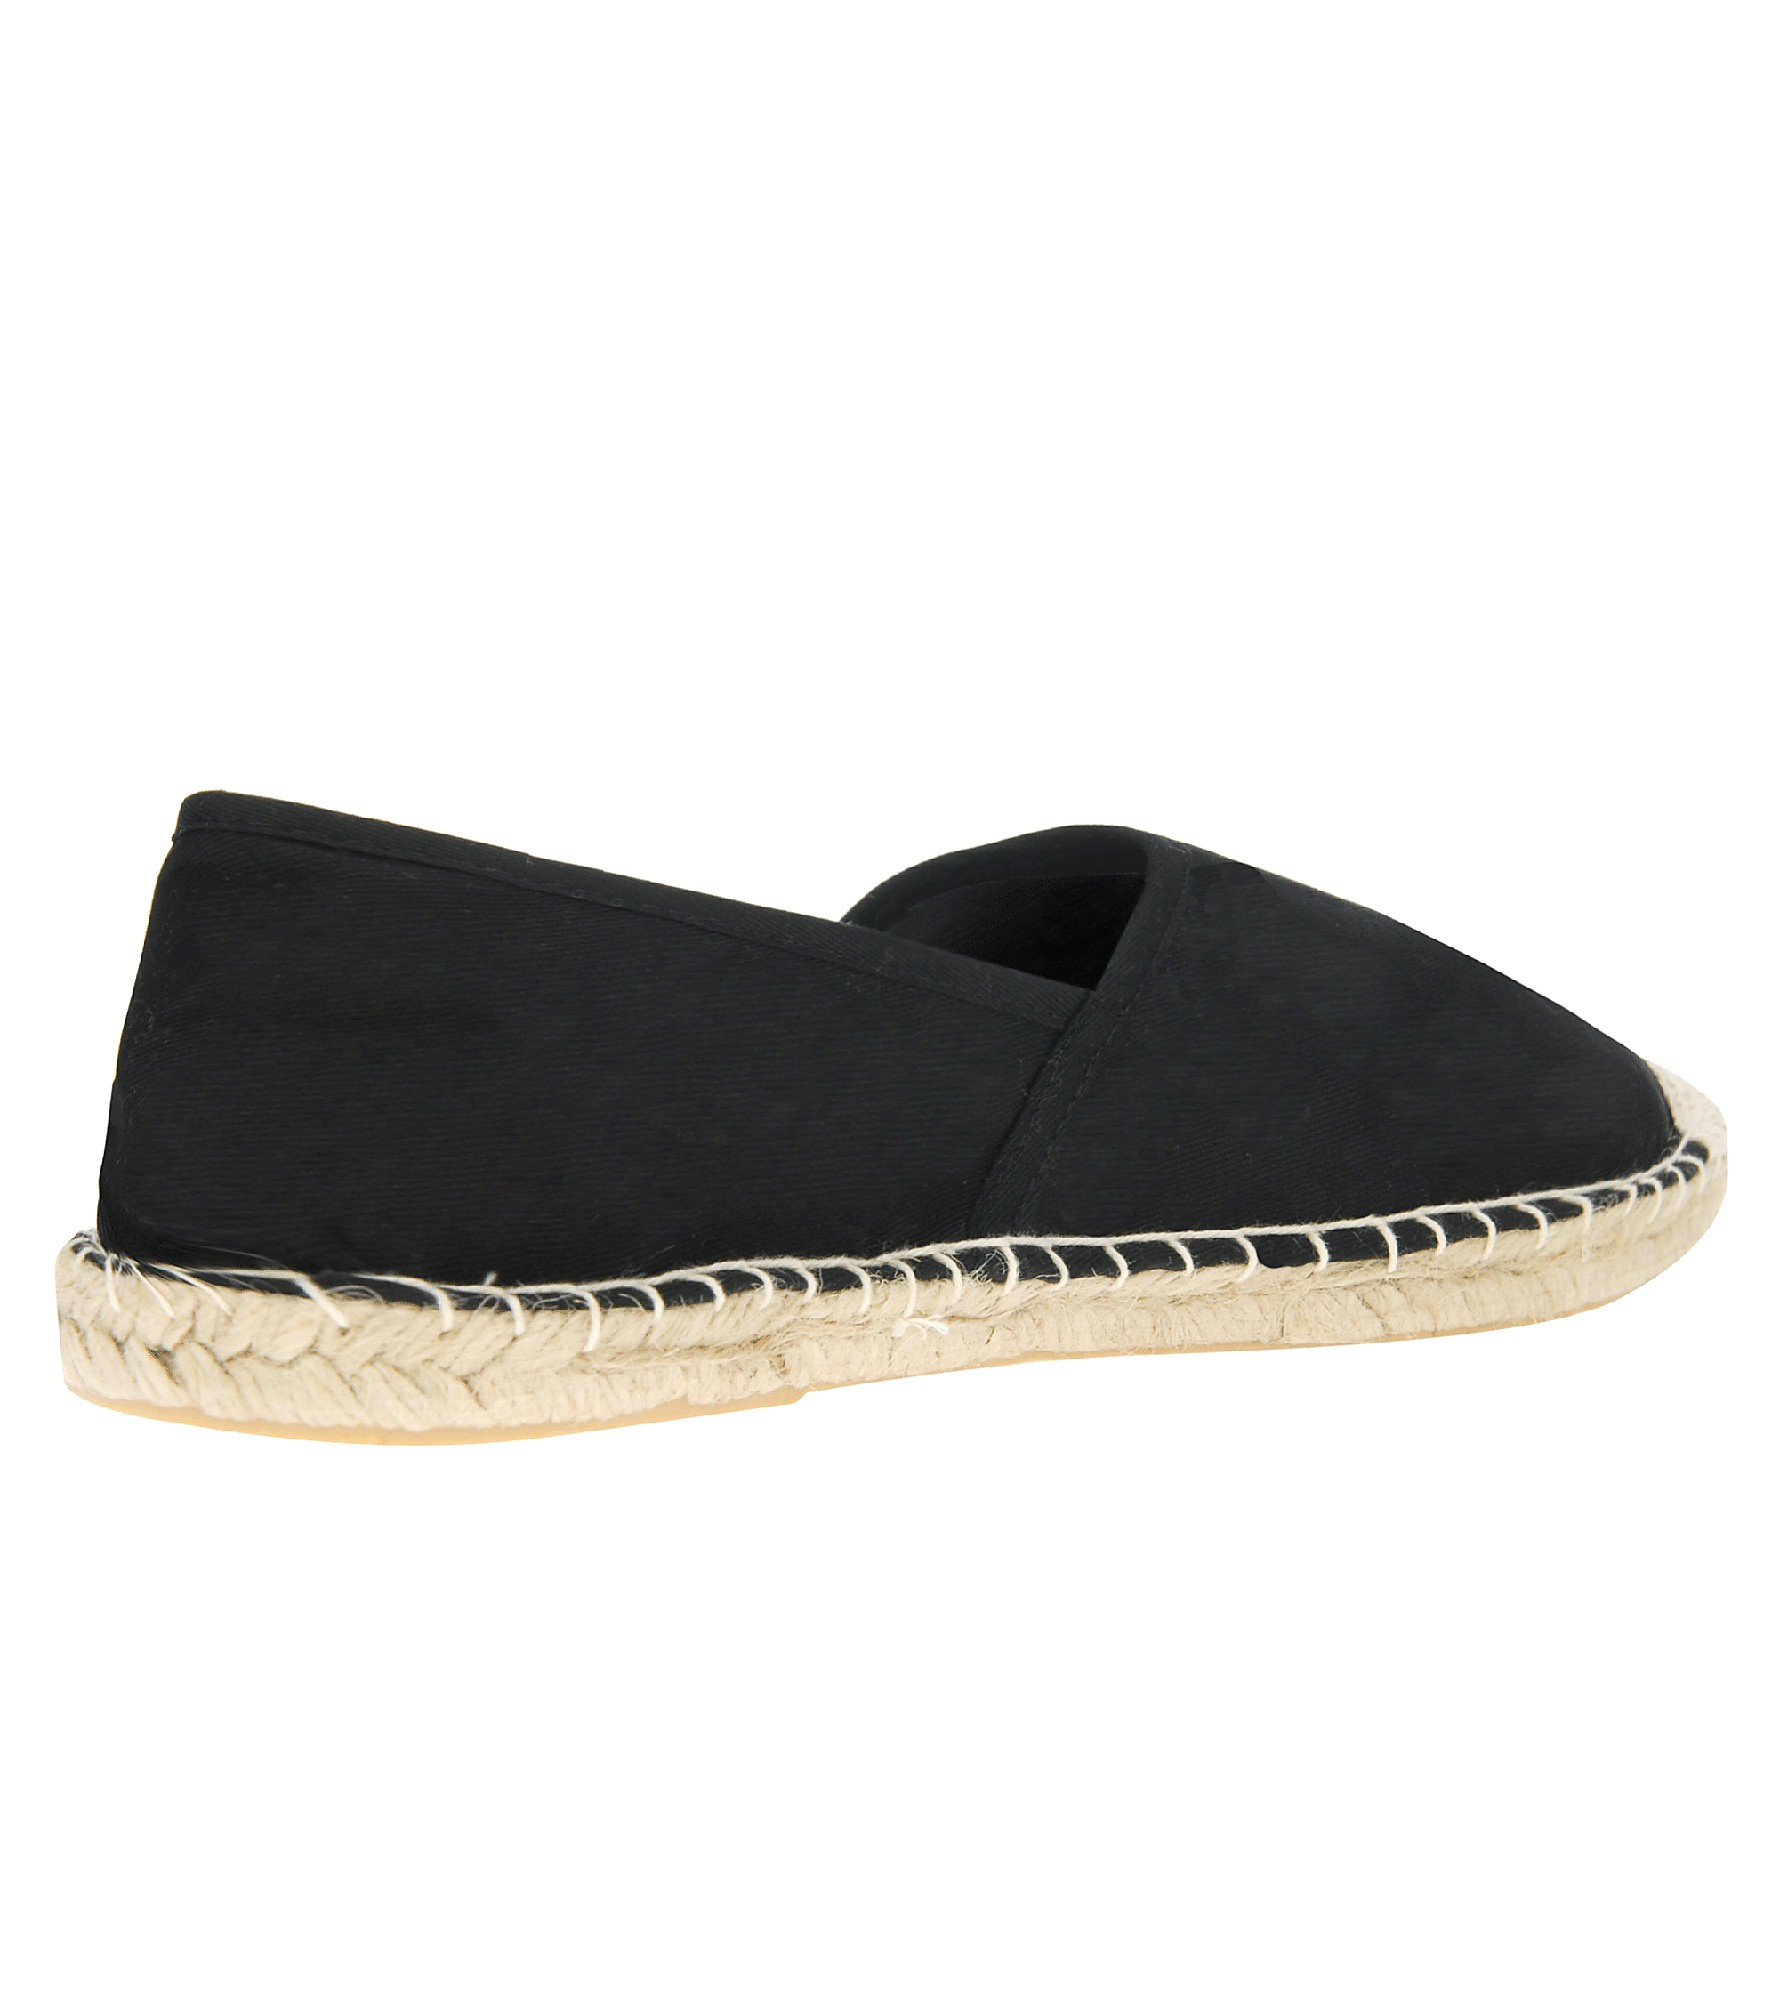 Duffer of St George Espadrille - Exclusive